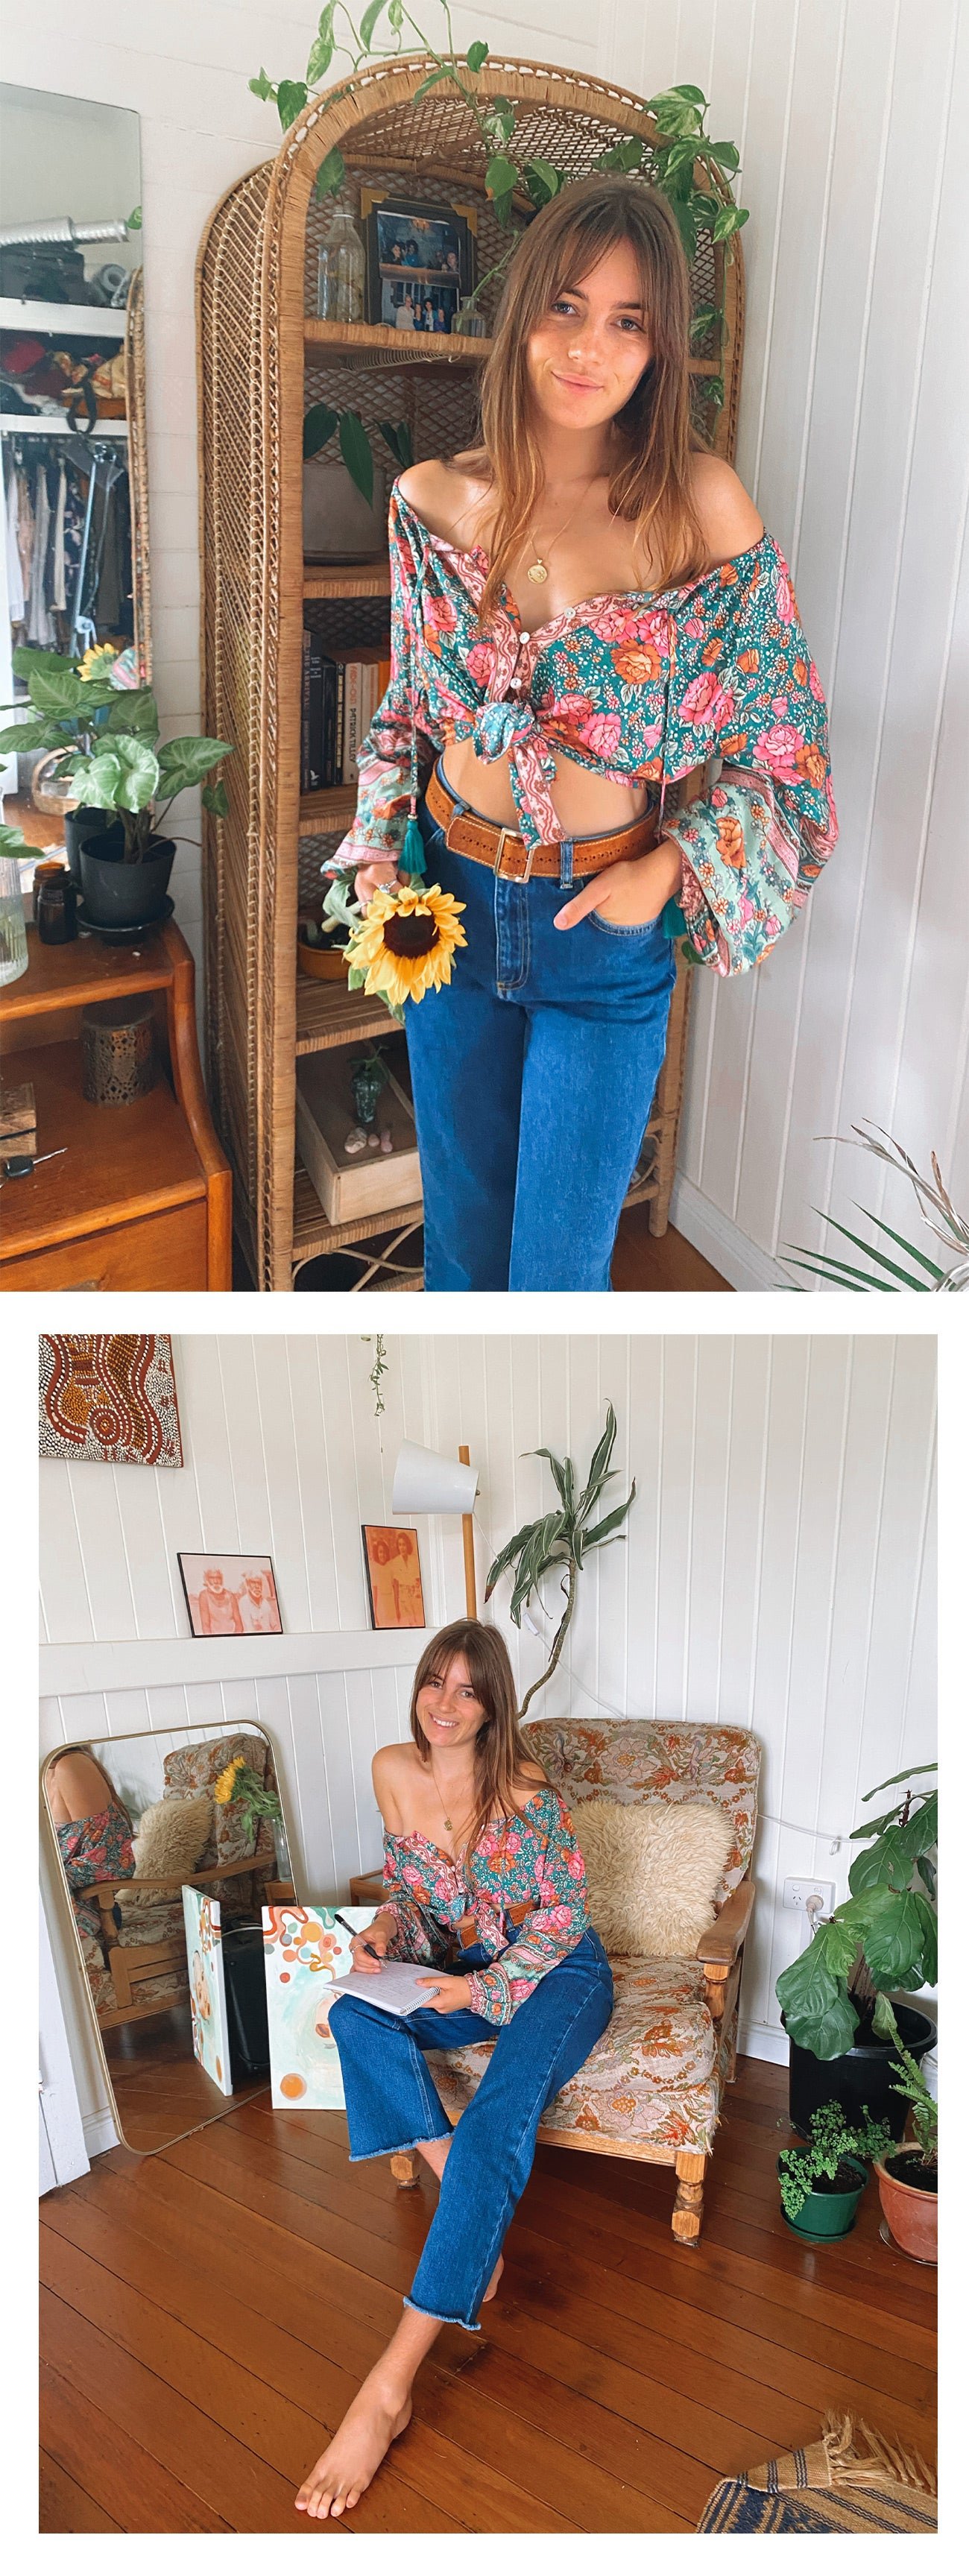 Freya wears the Amberley Blouse and Hideaway Jeans from Arnhem